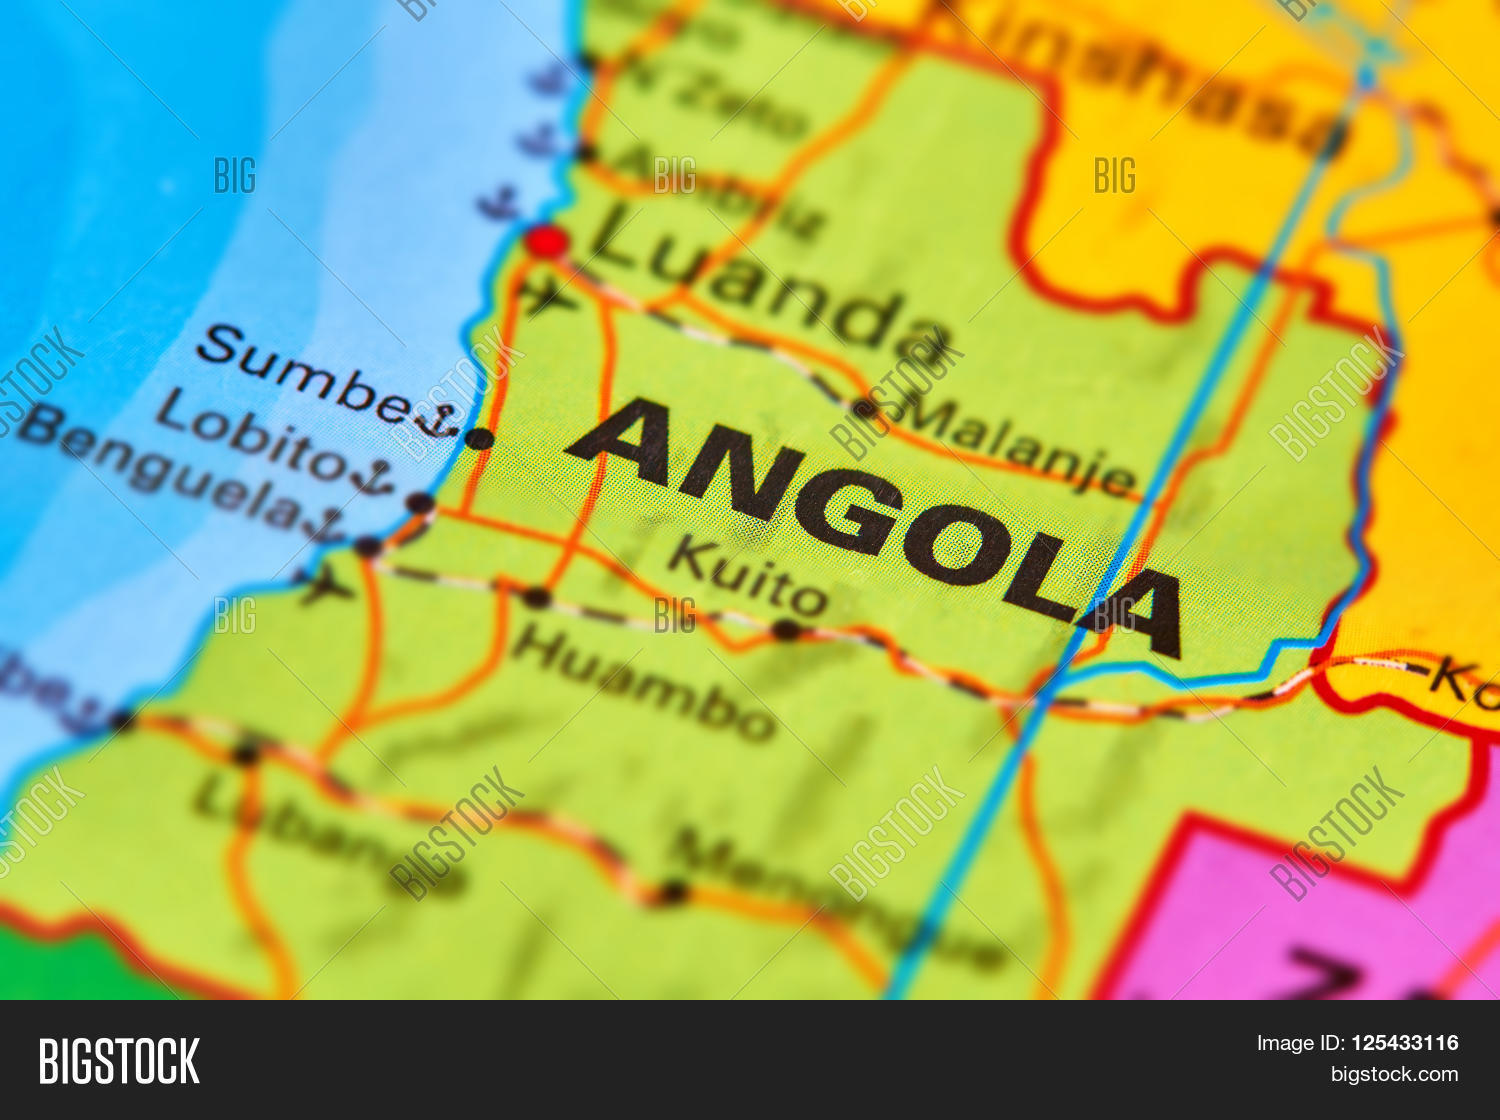 Picture of: Angola Country Africa Image Photo Free Trial Bigstock